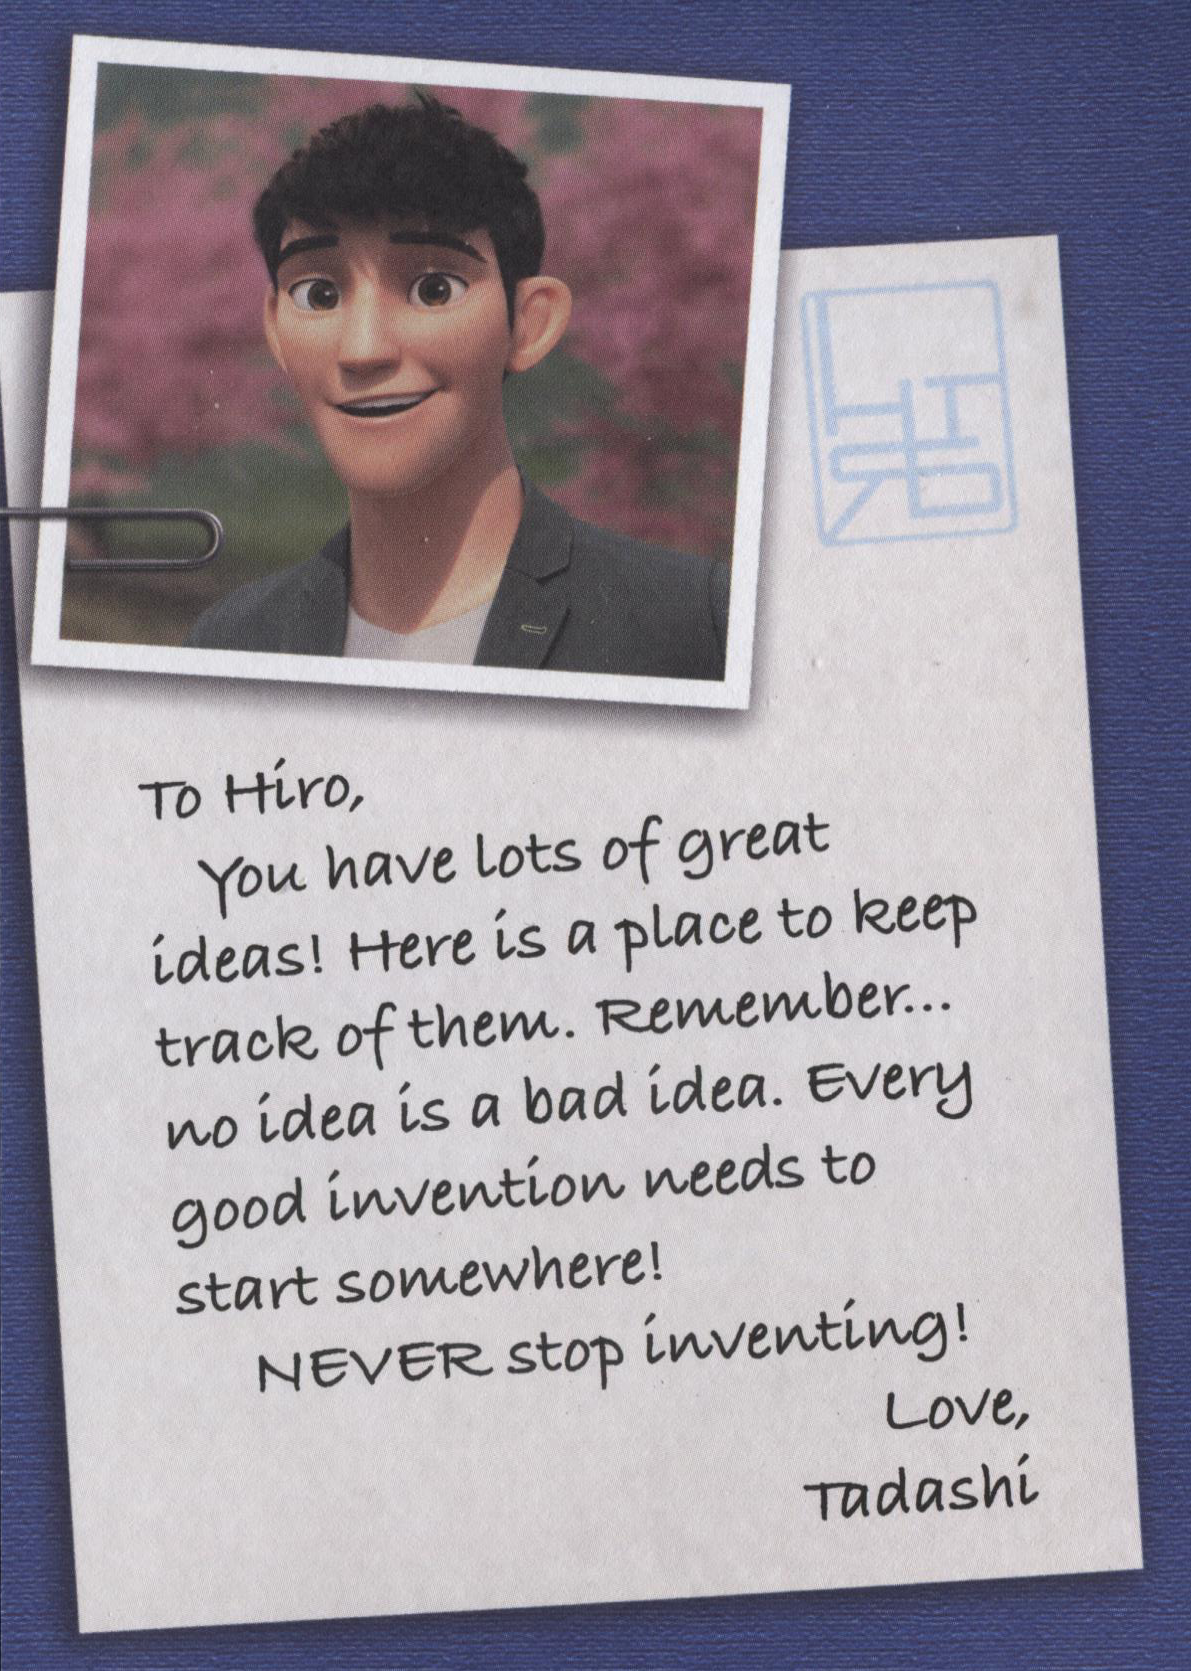 big hero 6 tadashi death - photo #23